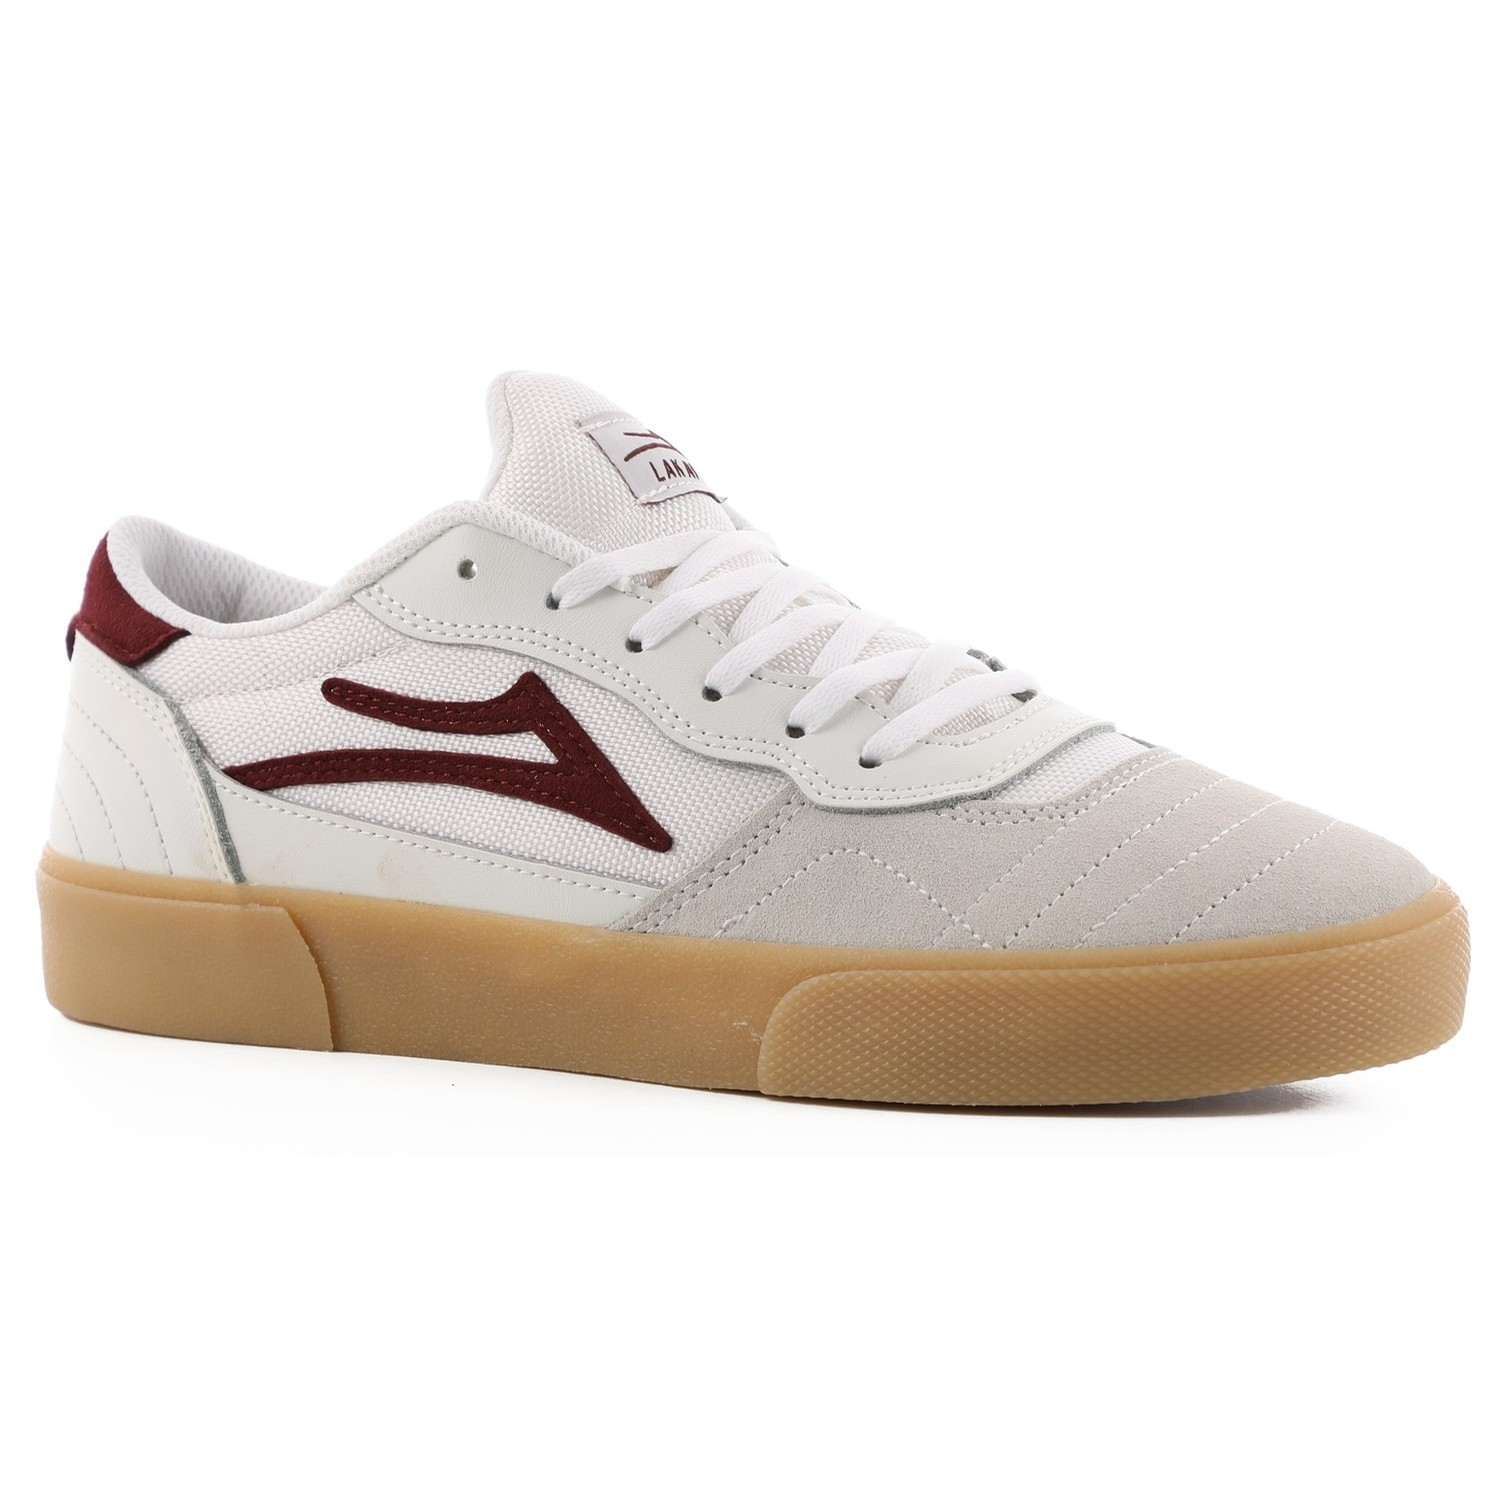 Cambridge (White/Burgundy Leather)